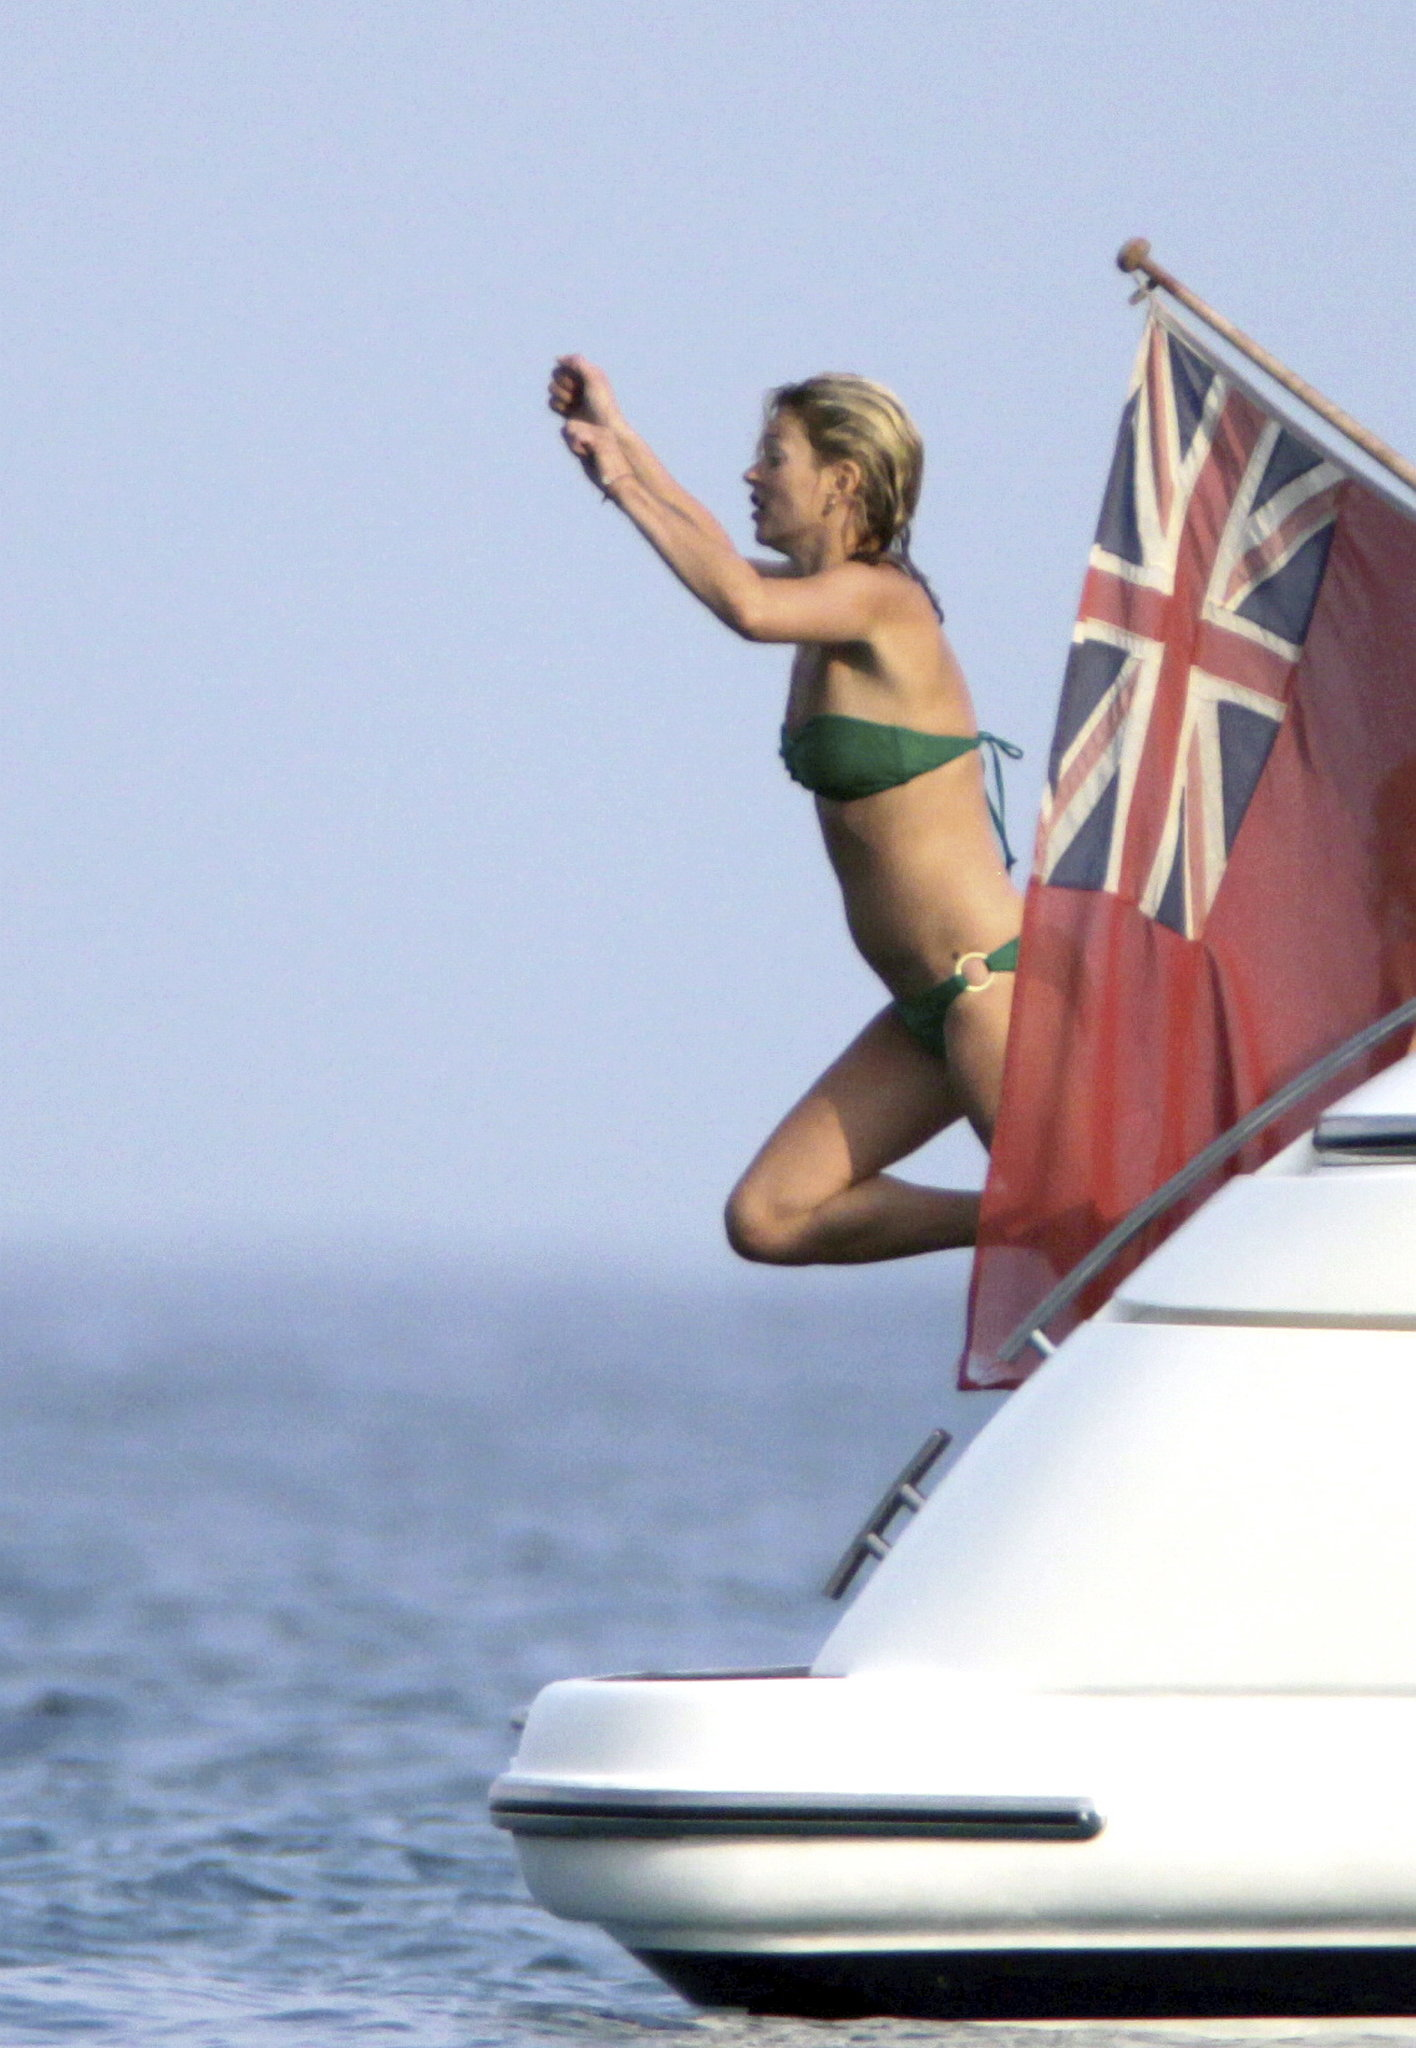 Kate Moss leaped from a yacht while vacationing in St. Tropez with Lily Allen in 2009.